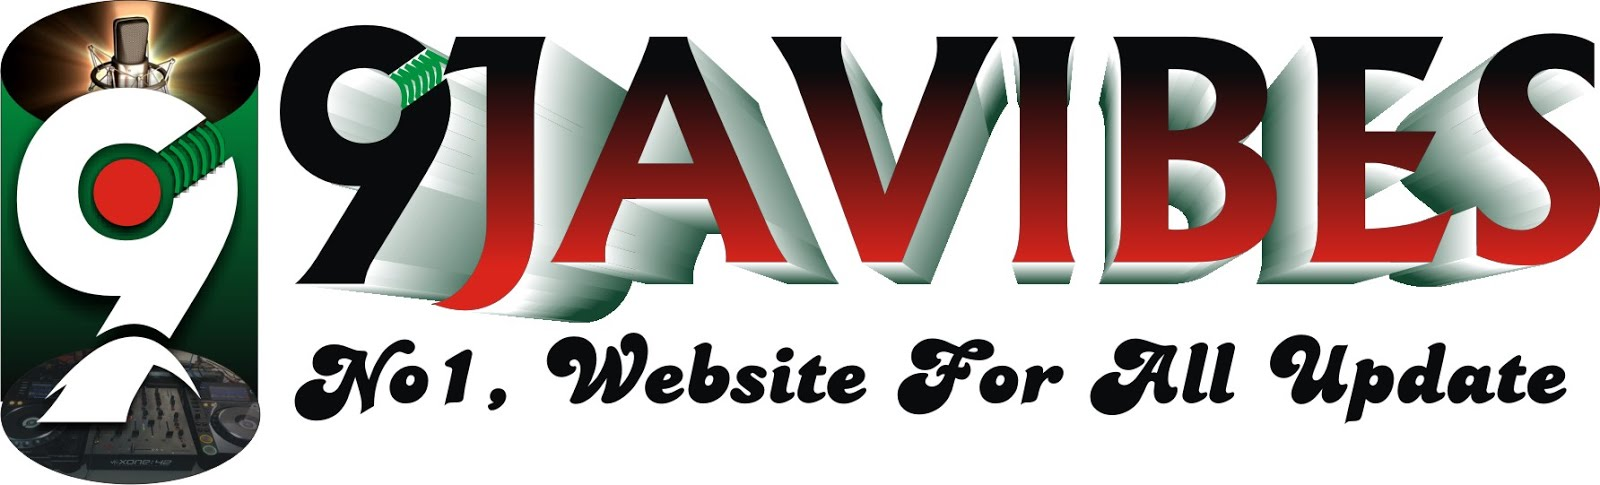 9javibes II Nigeria No 1, Entertainment and infotainment portal